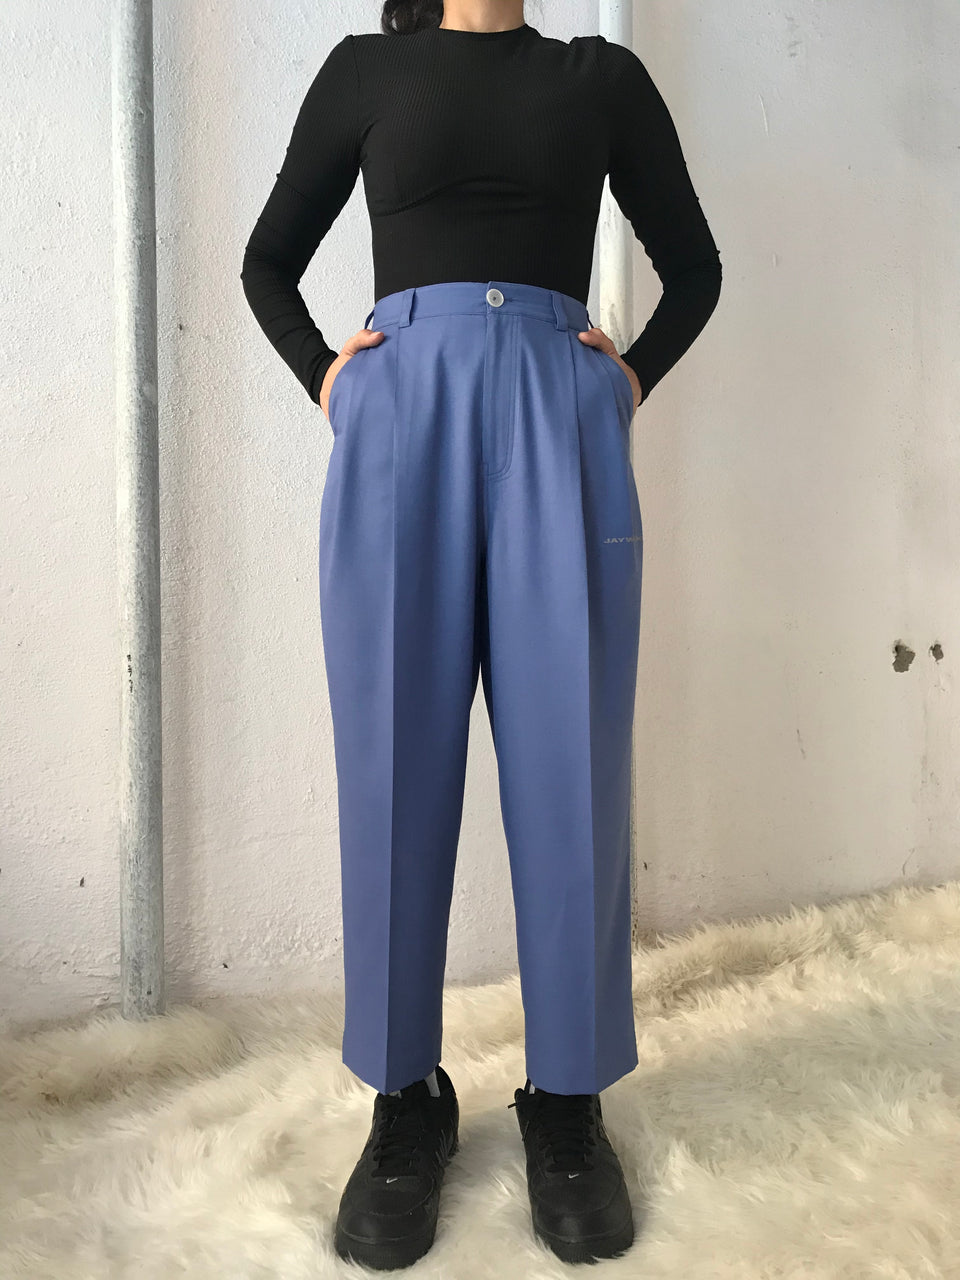 CORNFLOWER BLUE PLEATED PANTS [UNISEX]